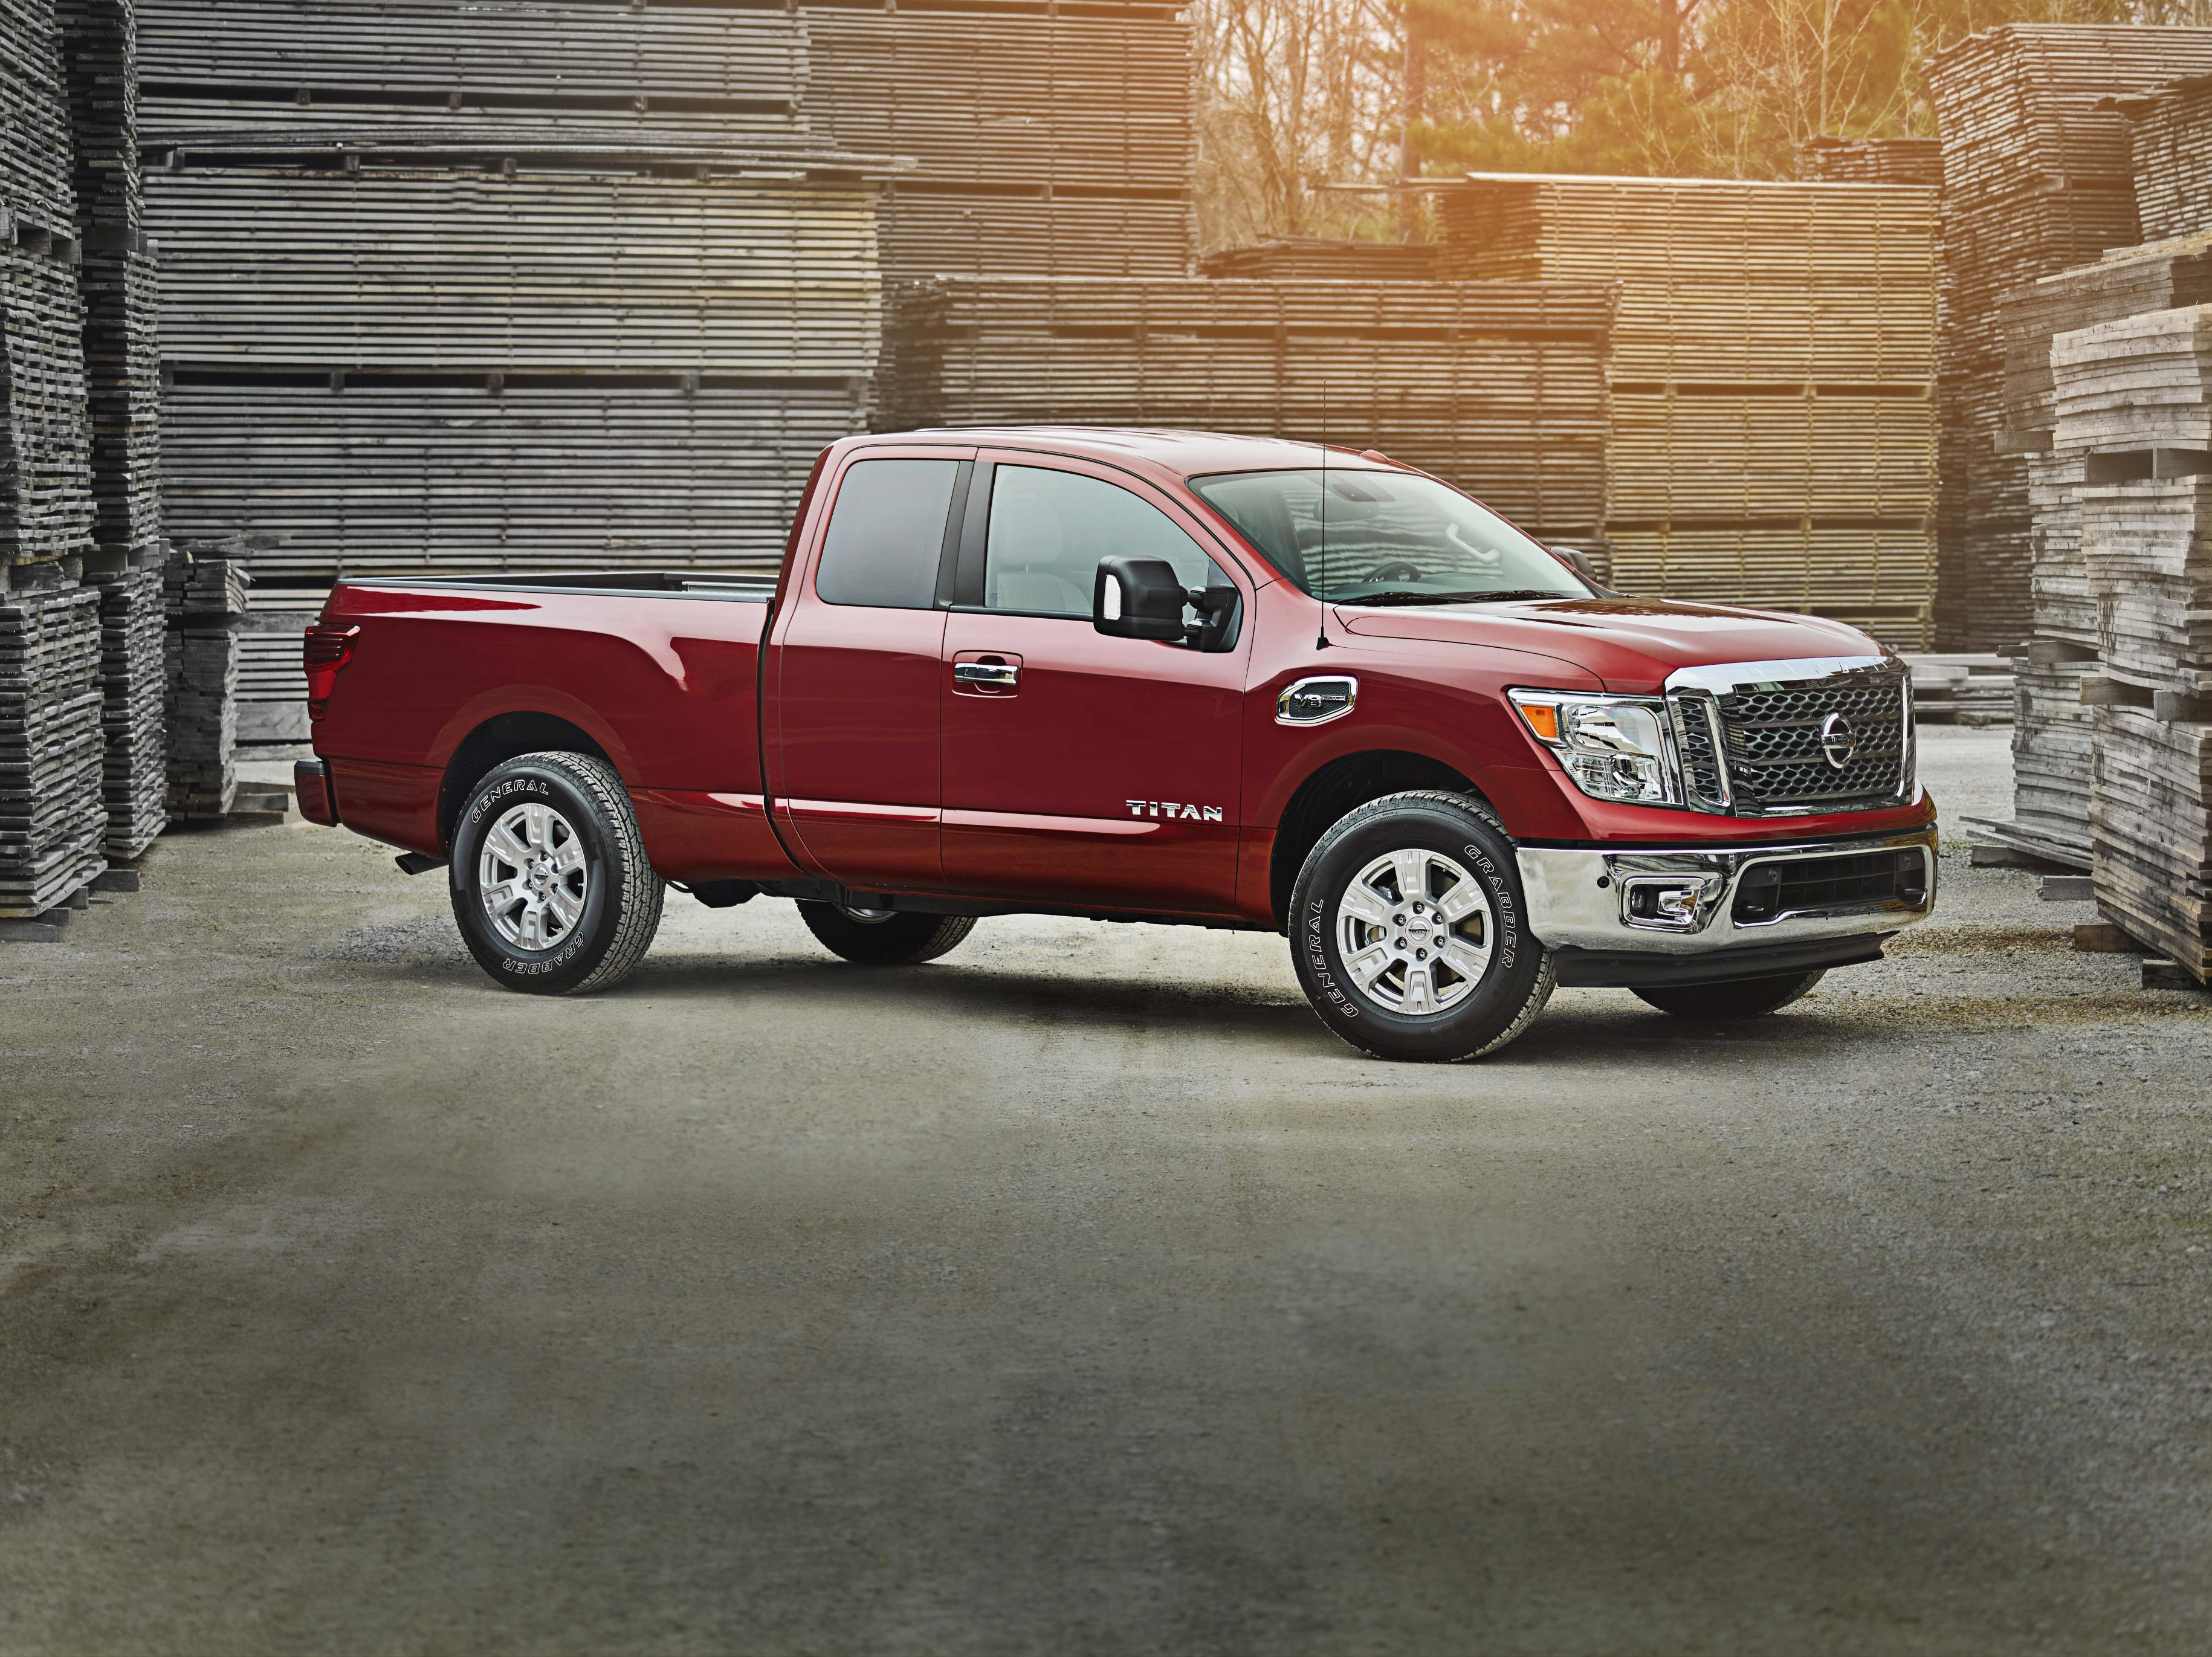 2017 Nissan Titan King Cab Joins Crew Cab And Single Cab ...